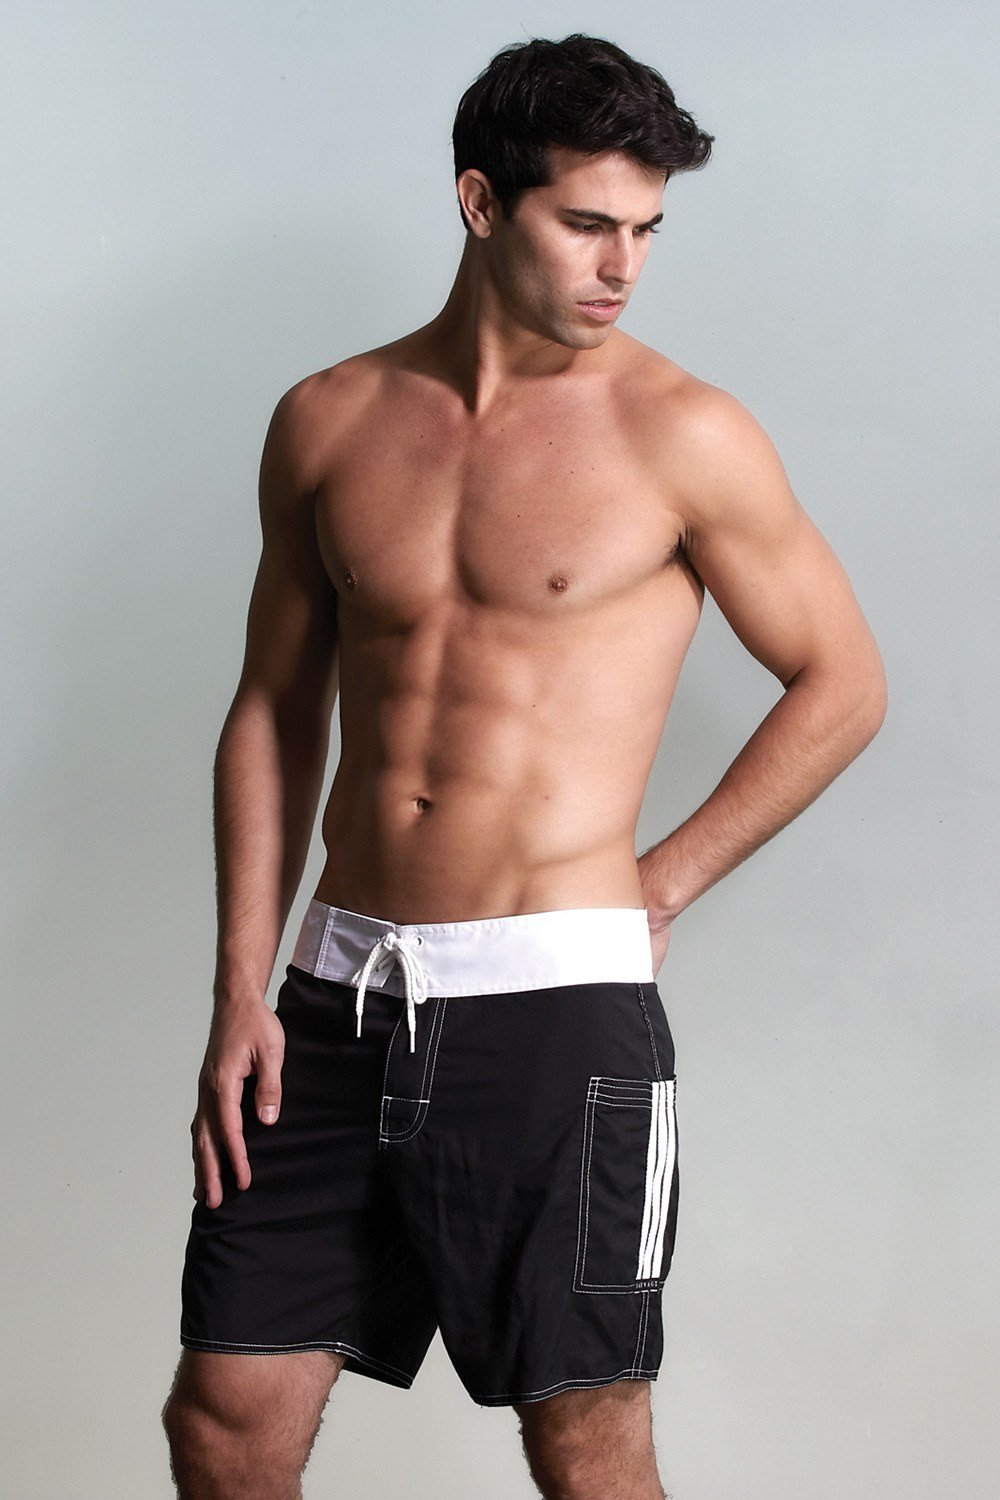 Sauvage Swimwear, Designer Swimwear from San Diego, CA made in usaBanded Pocket Board, Small - 30 / Black/Wht, Mens Swim, Men's Swim, Sauvage - 3